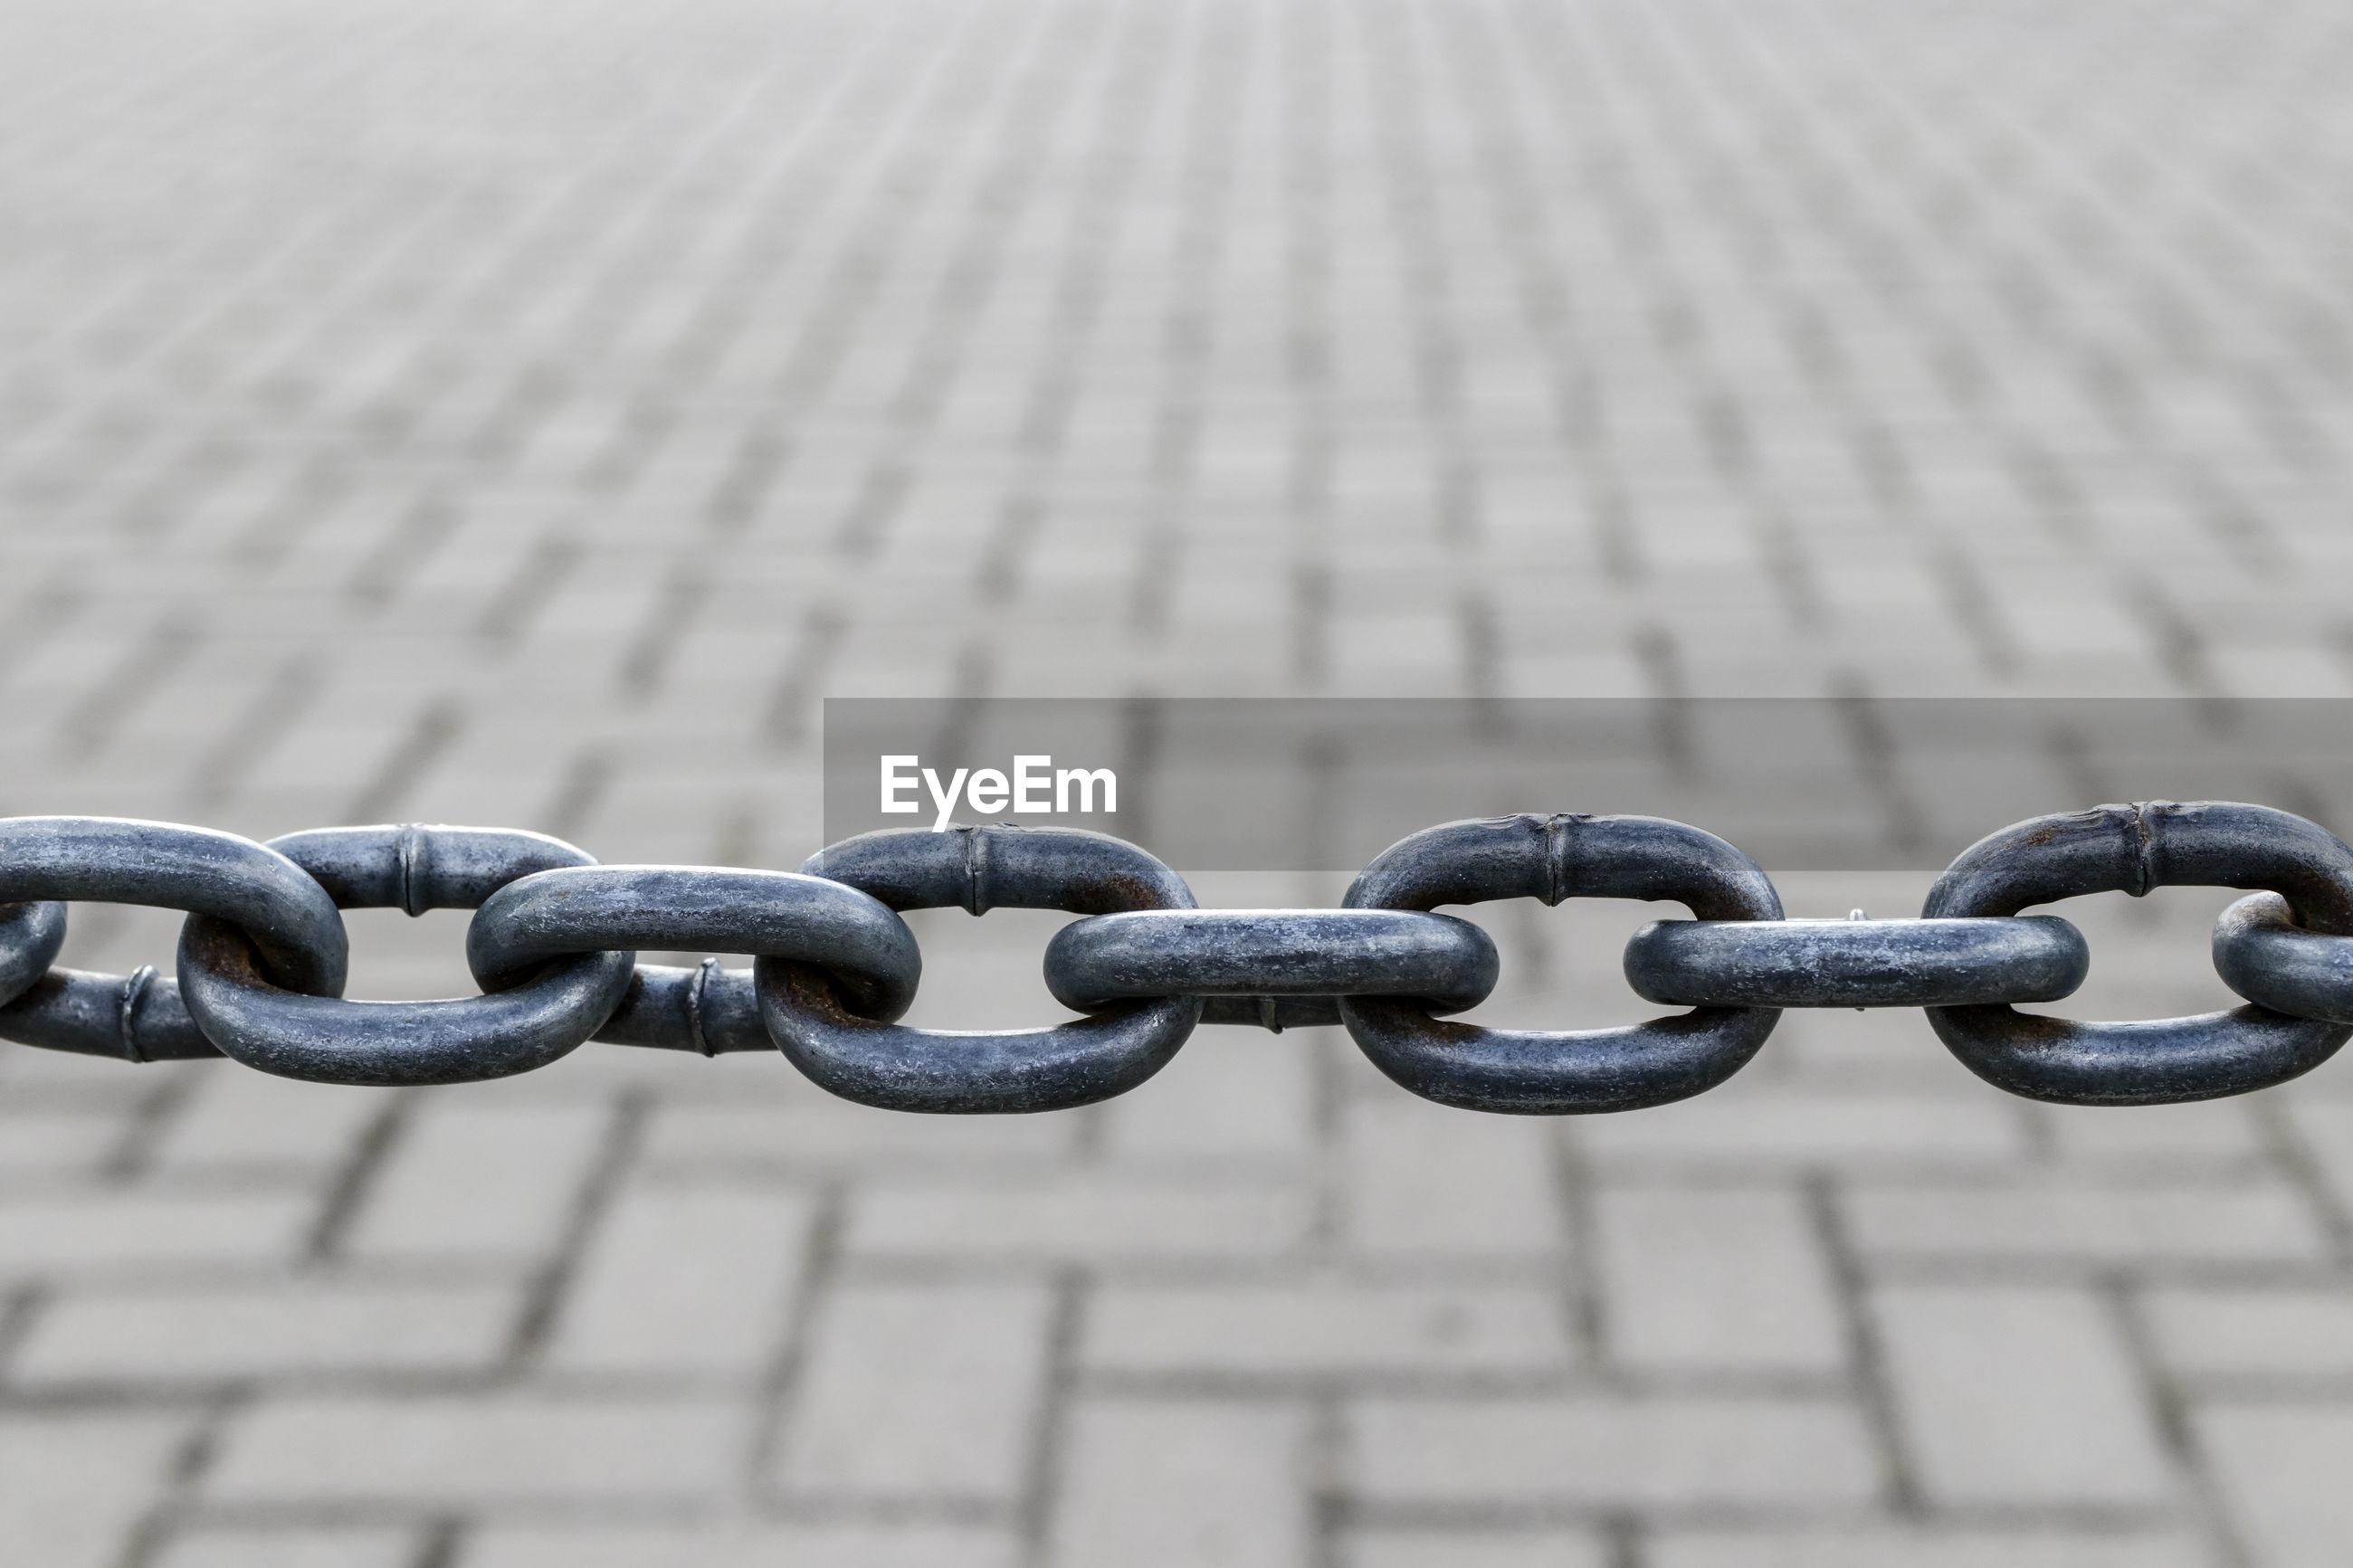 CLOSE-UP OF CHAIN ON METAL FENCE